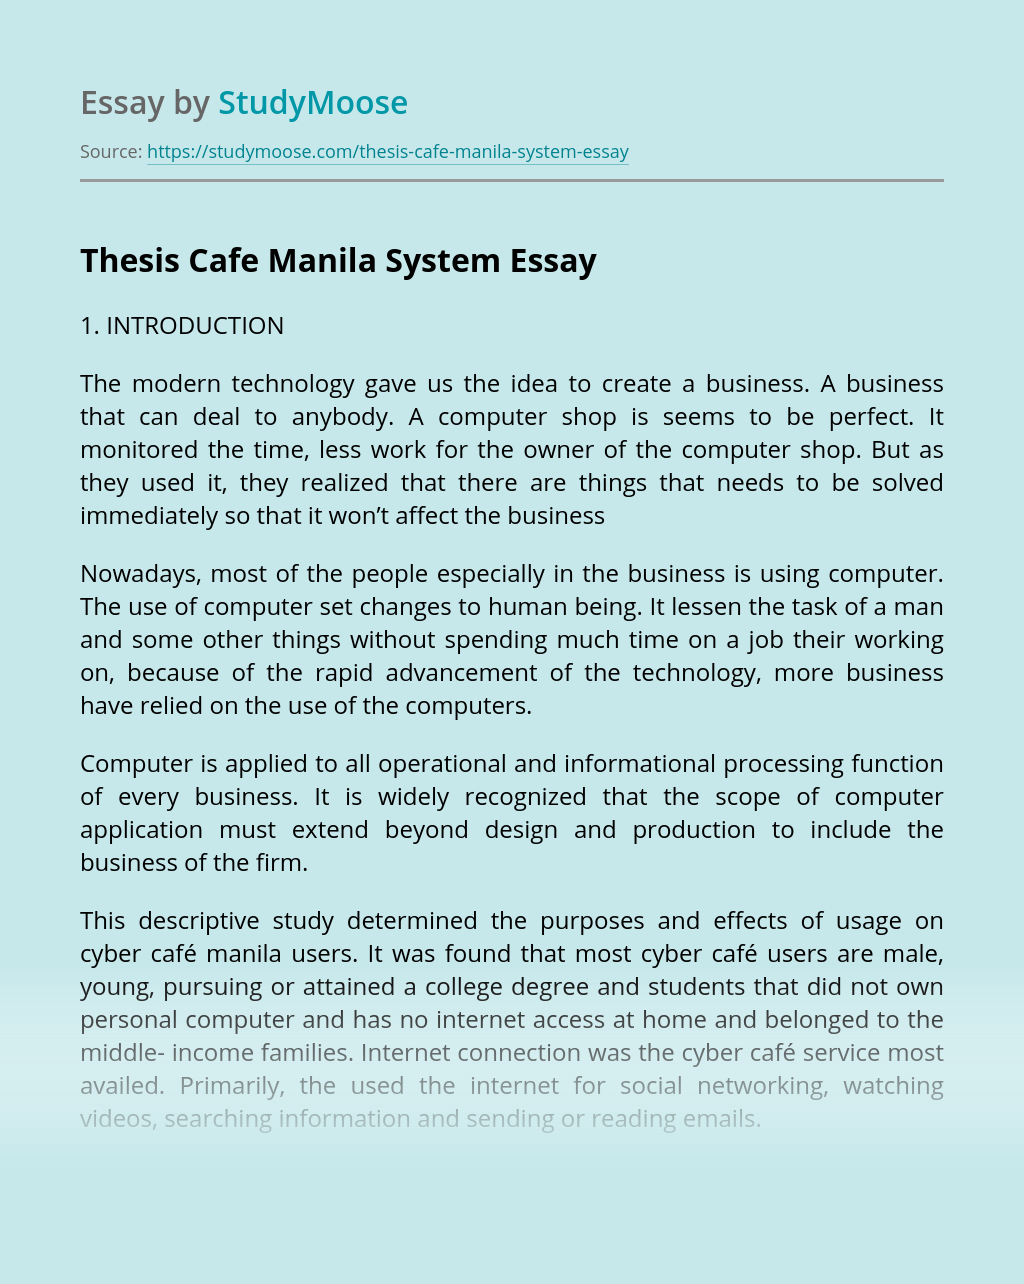 Thesis Cafe Manila System